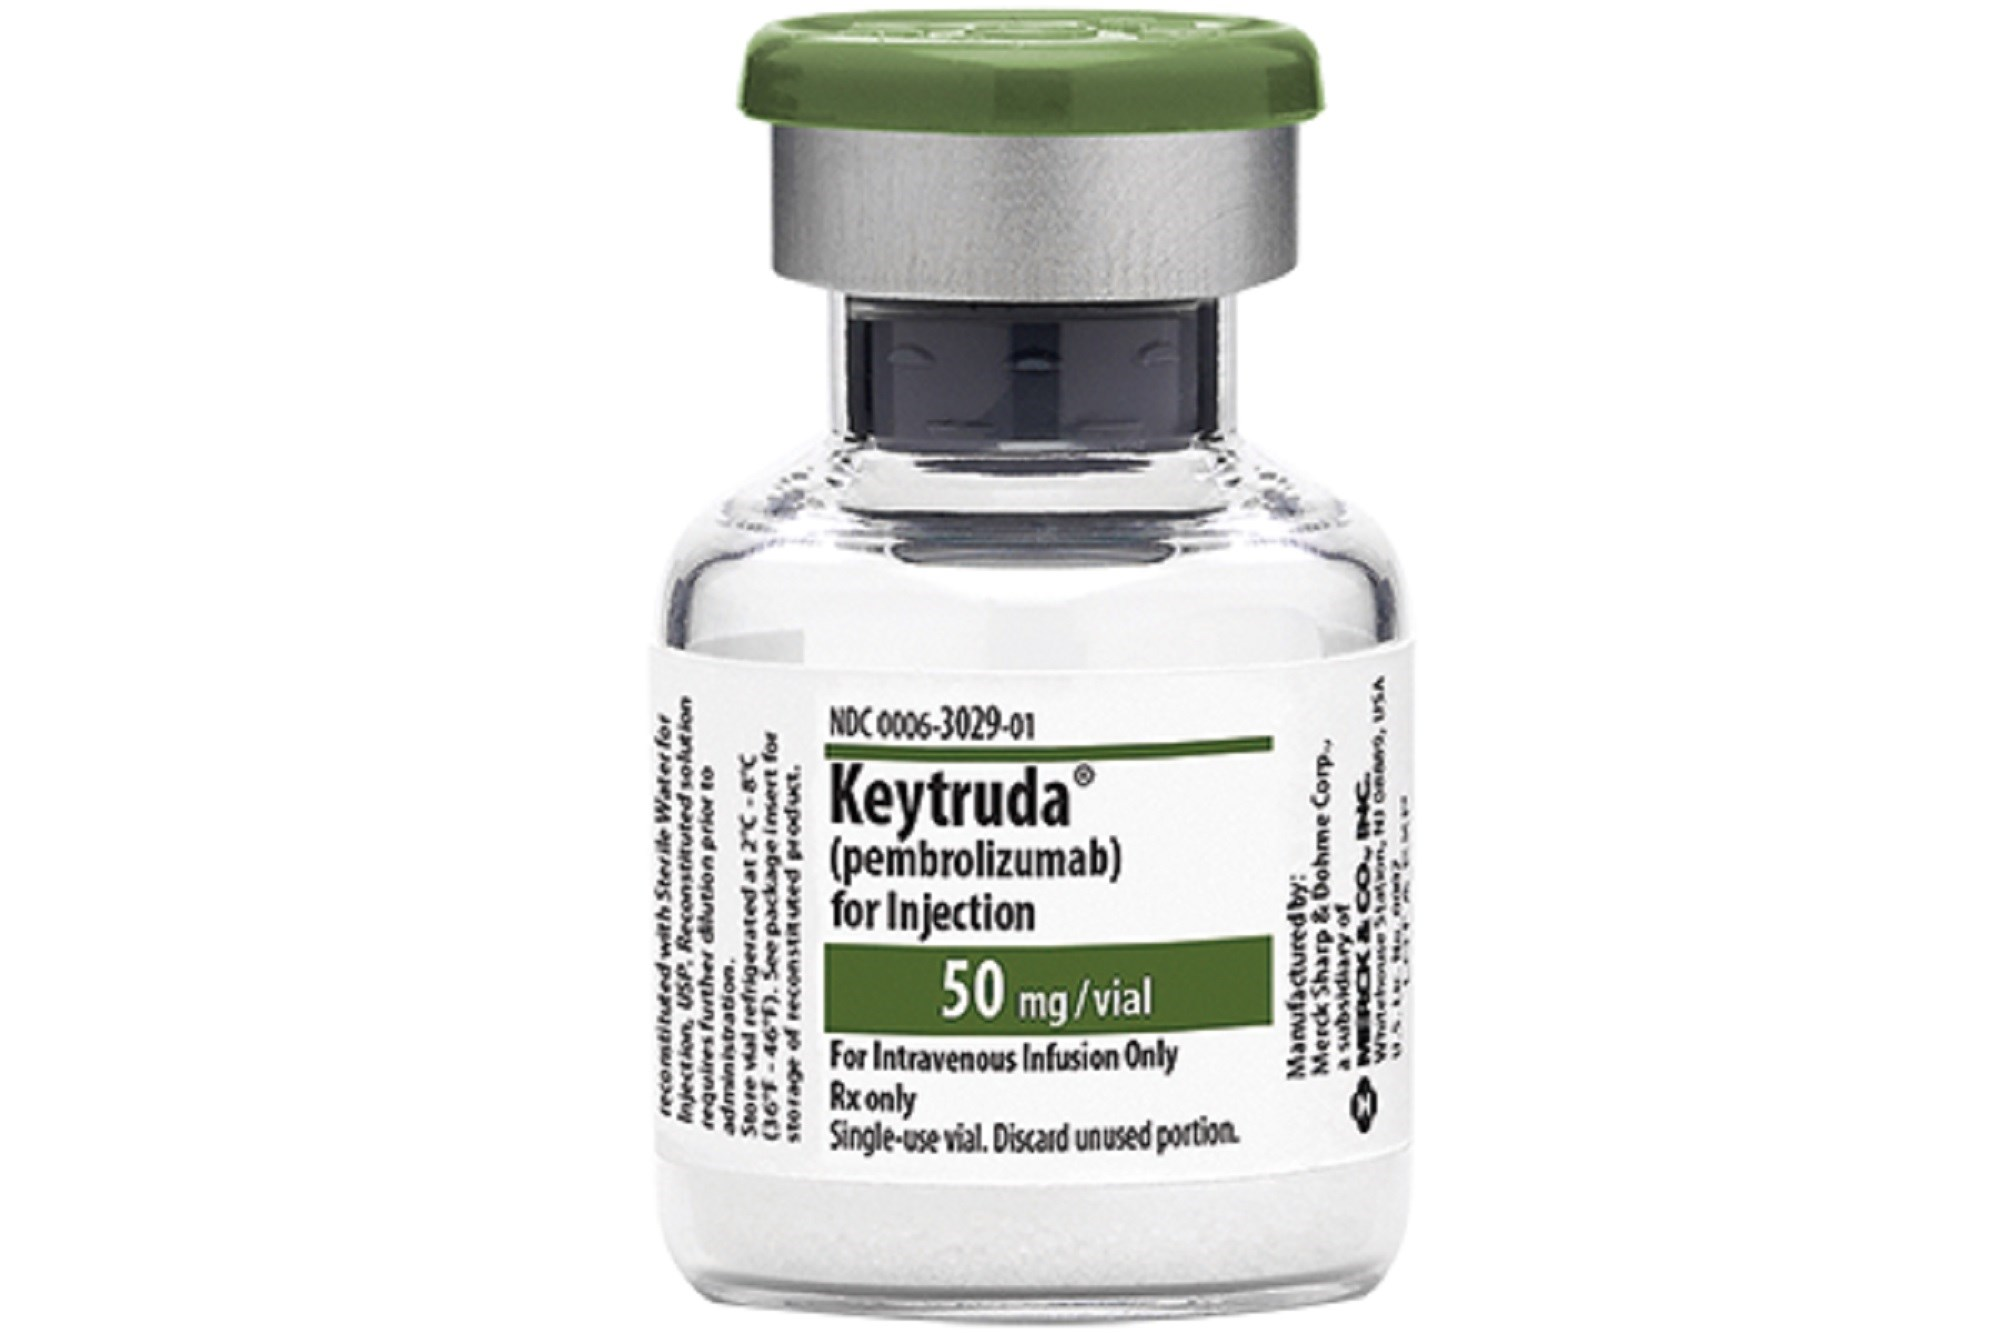 Keytruda Gets FDA Approval for Hepatocellular Carcinoma